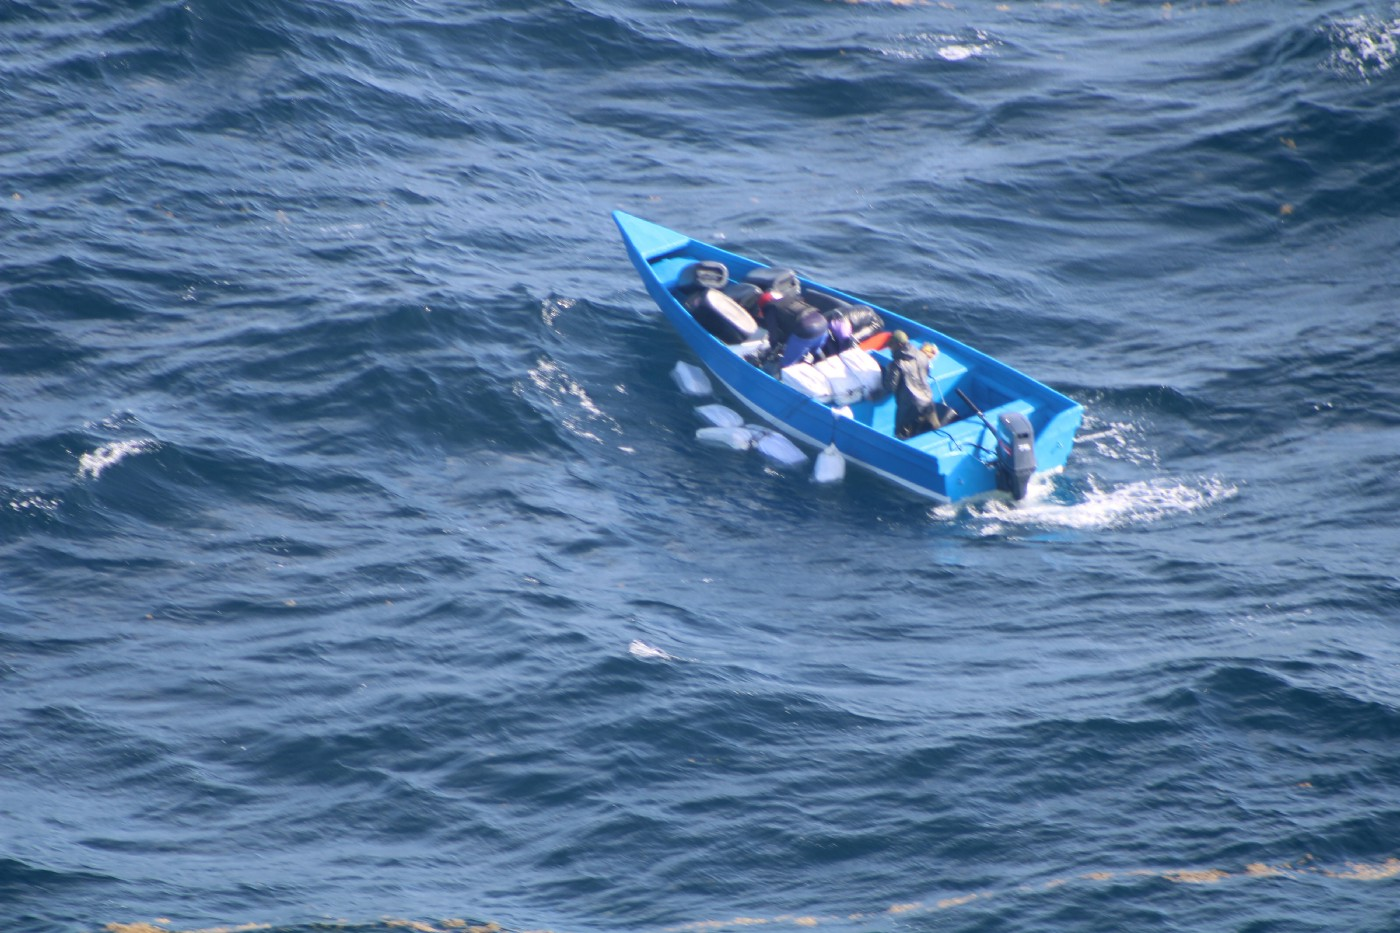 The suspicious small craft with three people on board throwing the large objects overboard.